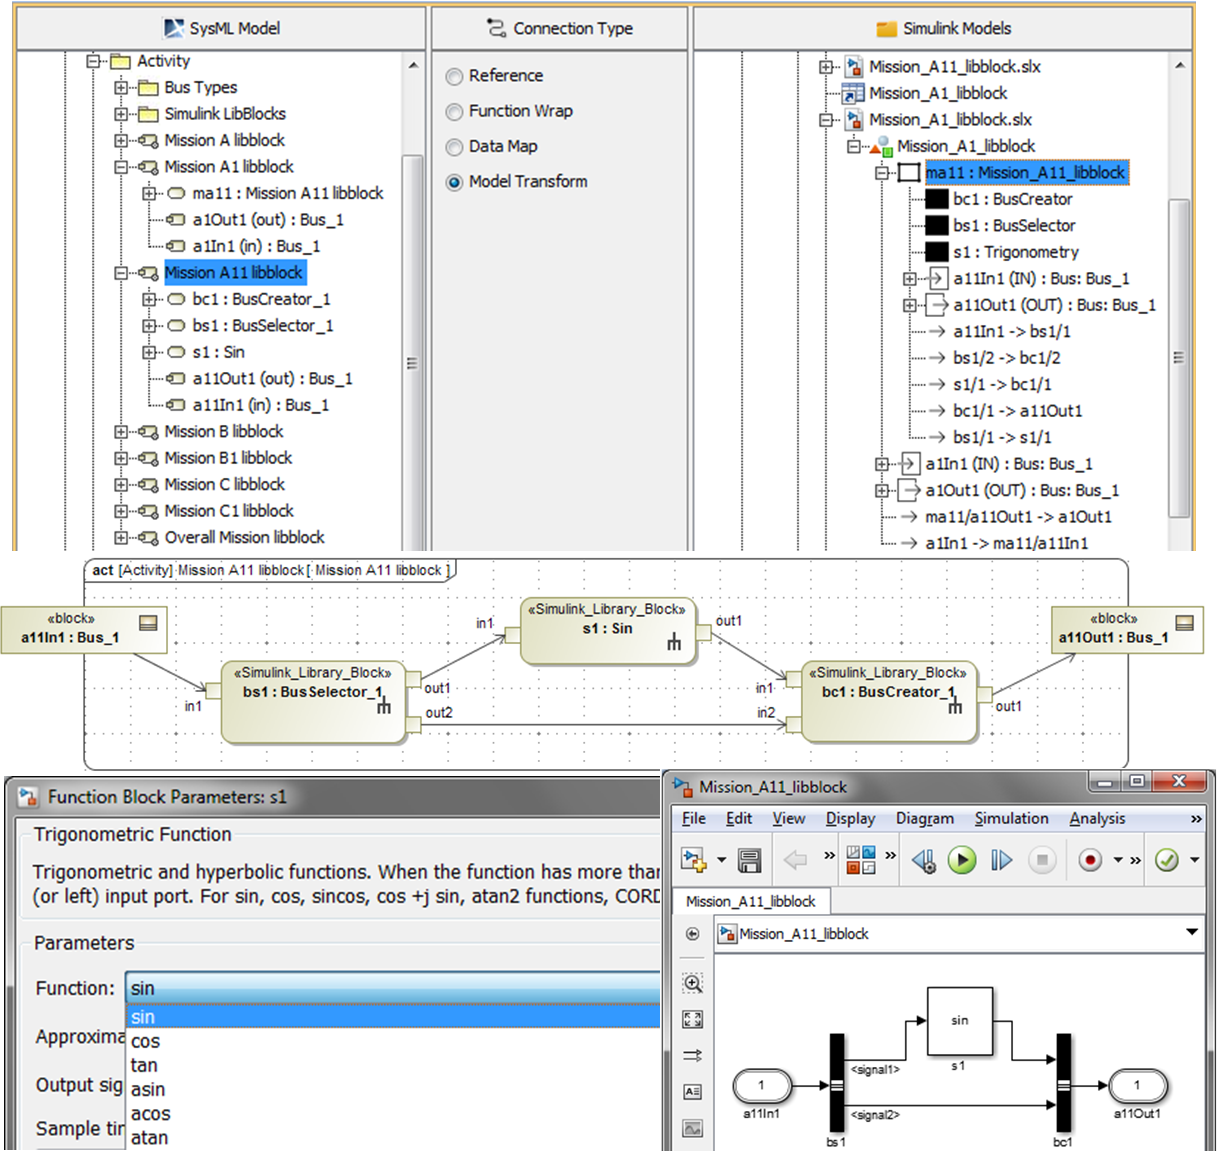 Top: Syndeia Dashboard showing SysML model on the left used to generate Simulink model on the right